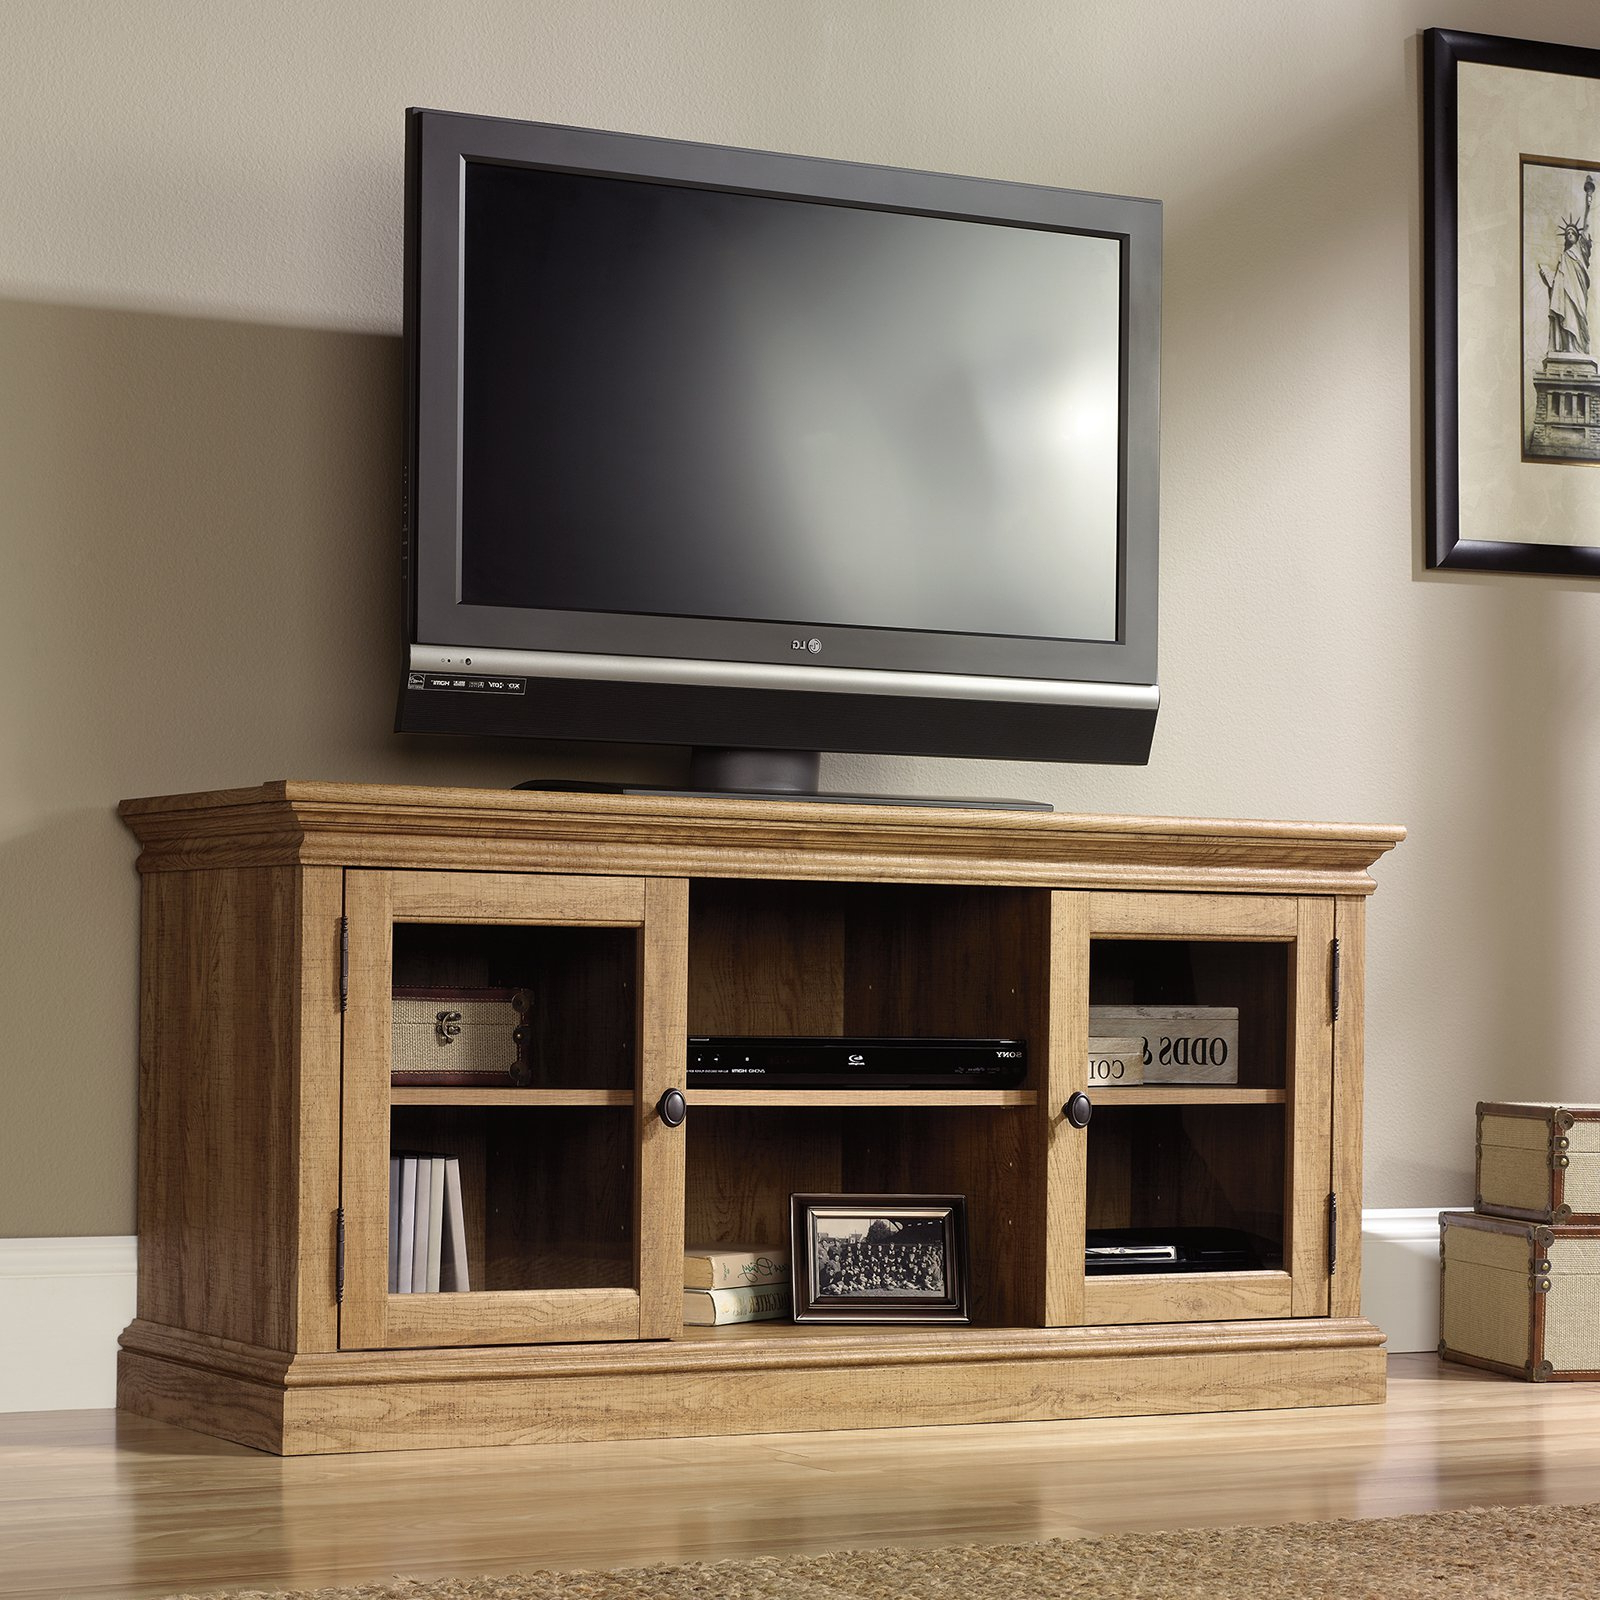 Well Known Remarkable Santana Blonde Oak Tv Unit Santana Blonde Oak Tv Unit Tv With Regard To Oak Tv Cabinets For Flat Screens With Doors (View 20 of 20)